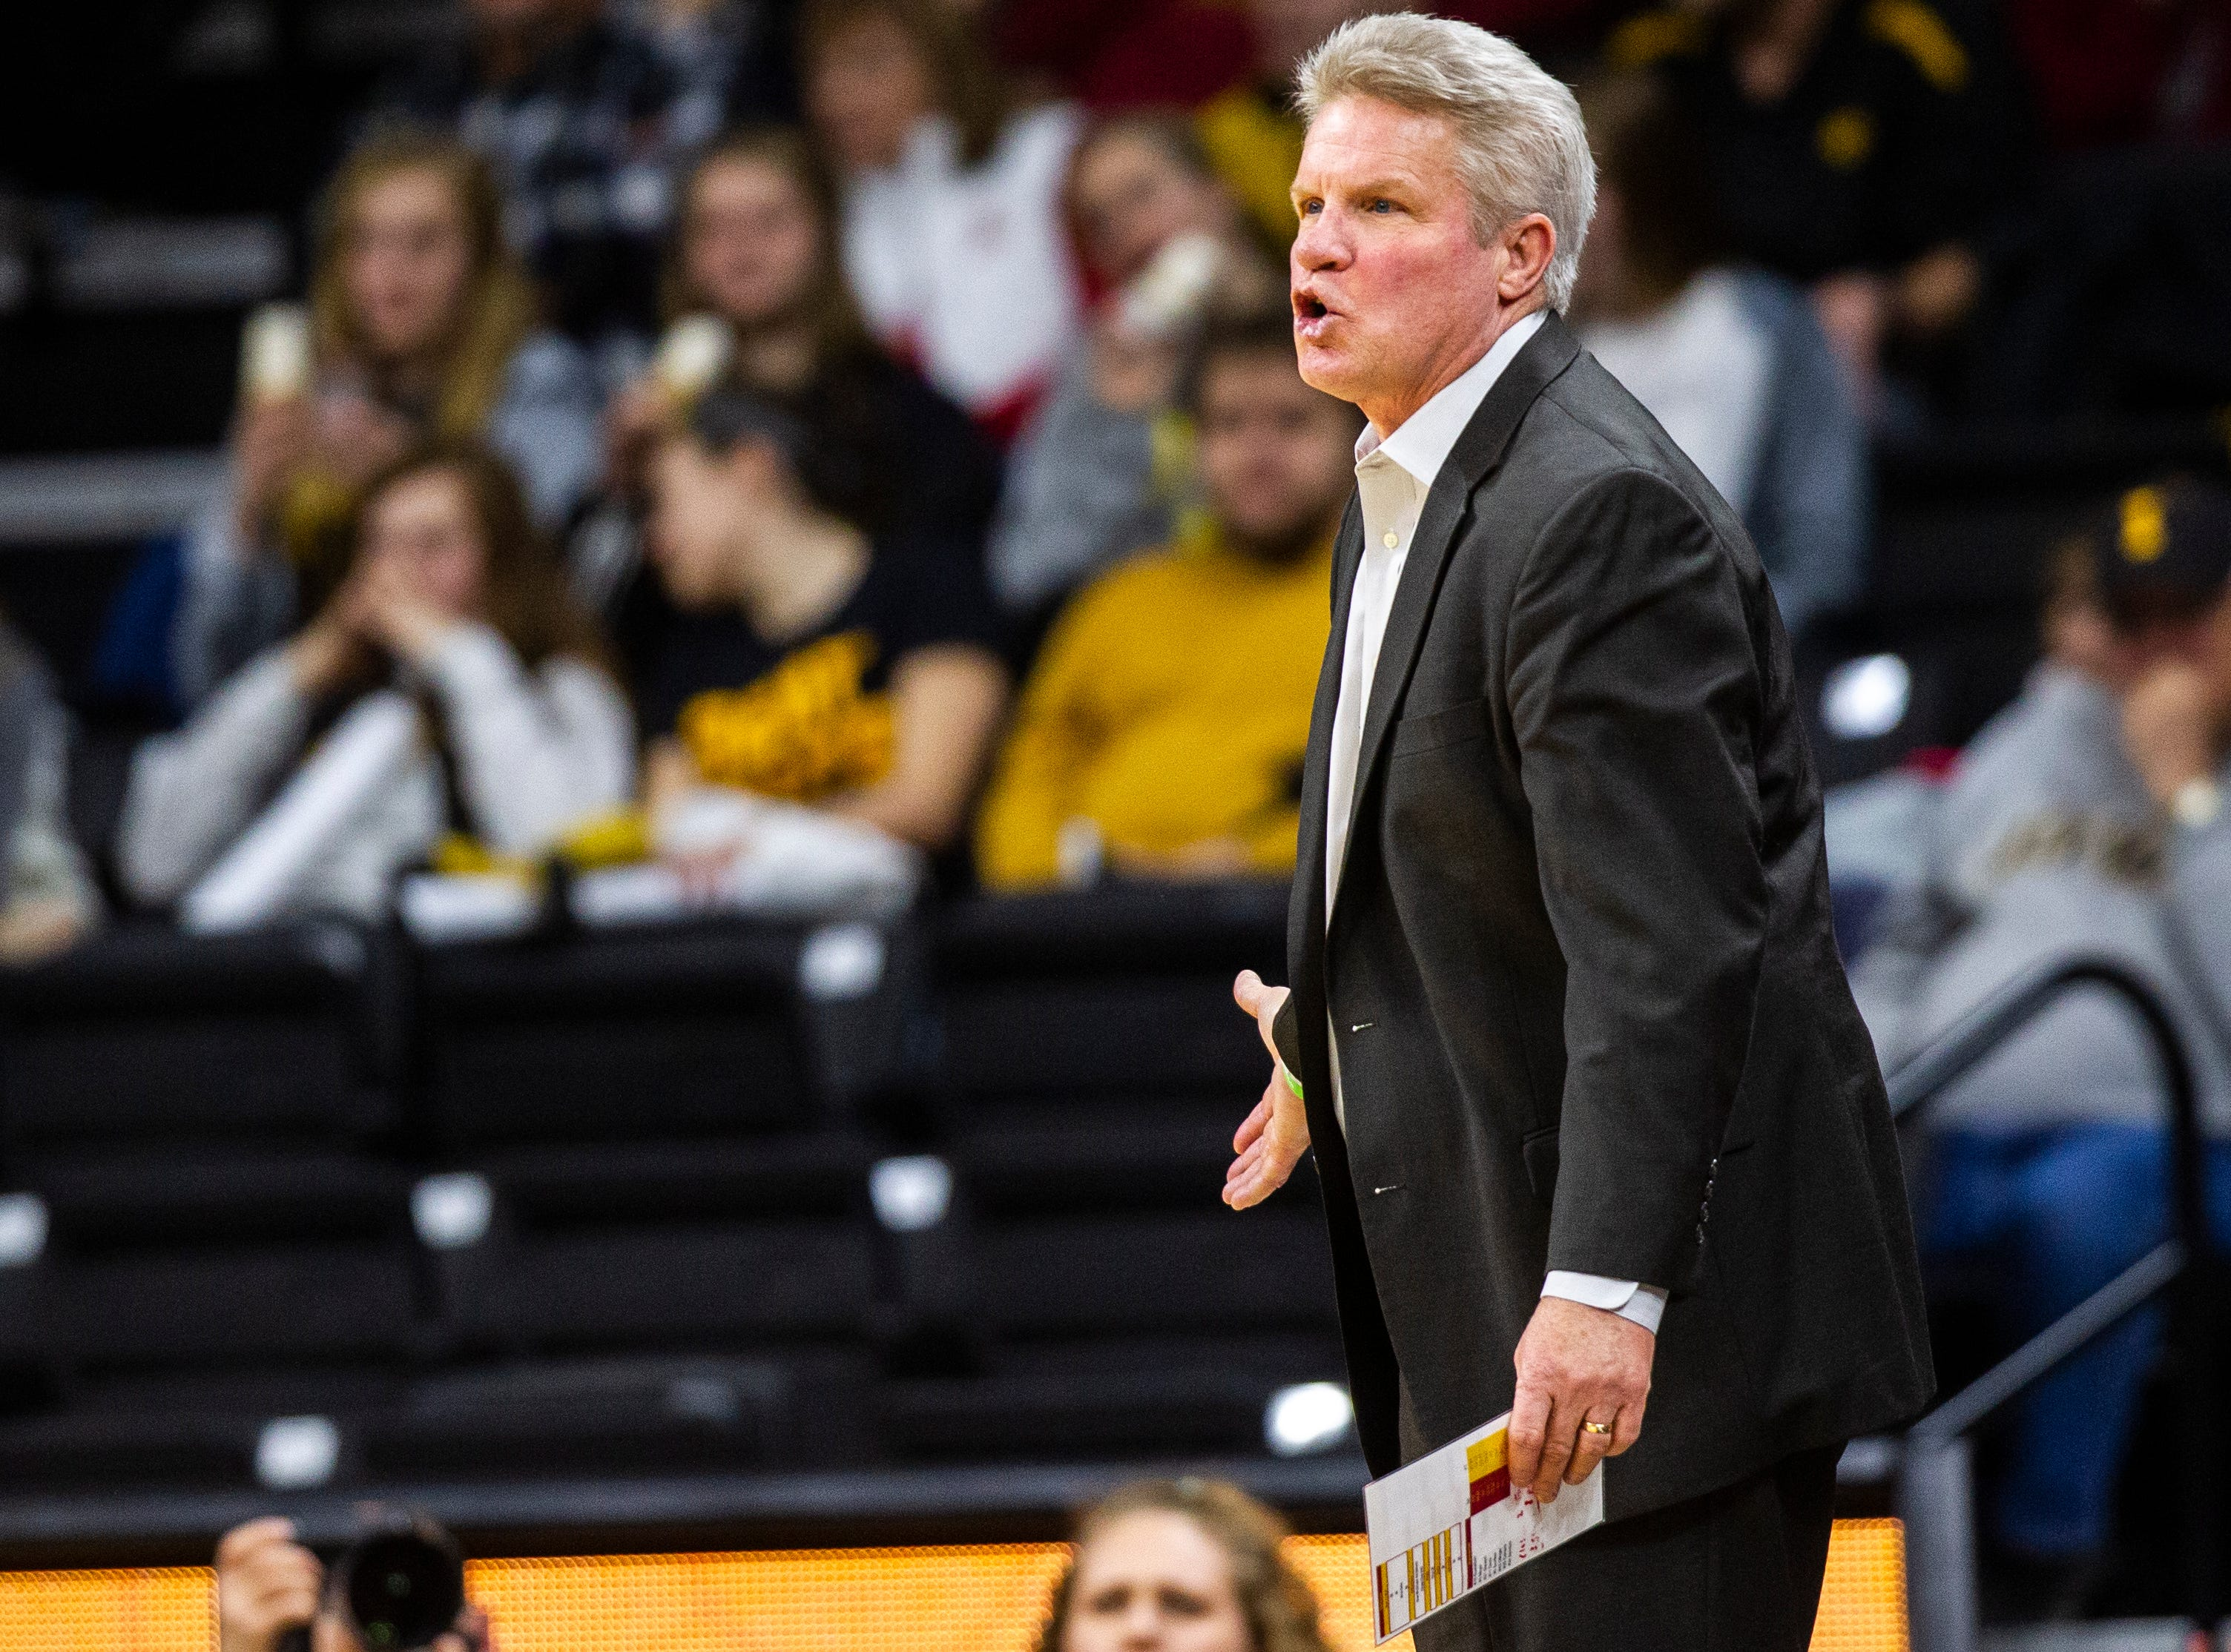 Iowa State head coach Bill Fennelly calls out to players during a Cy-Hawk series NCAA women's basketball game on Wednesday, Dec. 5, 2018, at Carver-Hawkeye Arena in Iowa City.